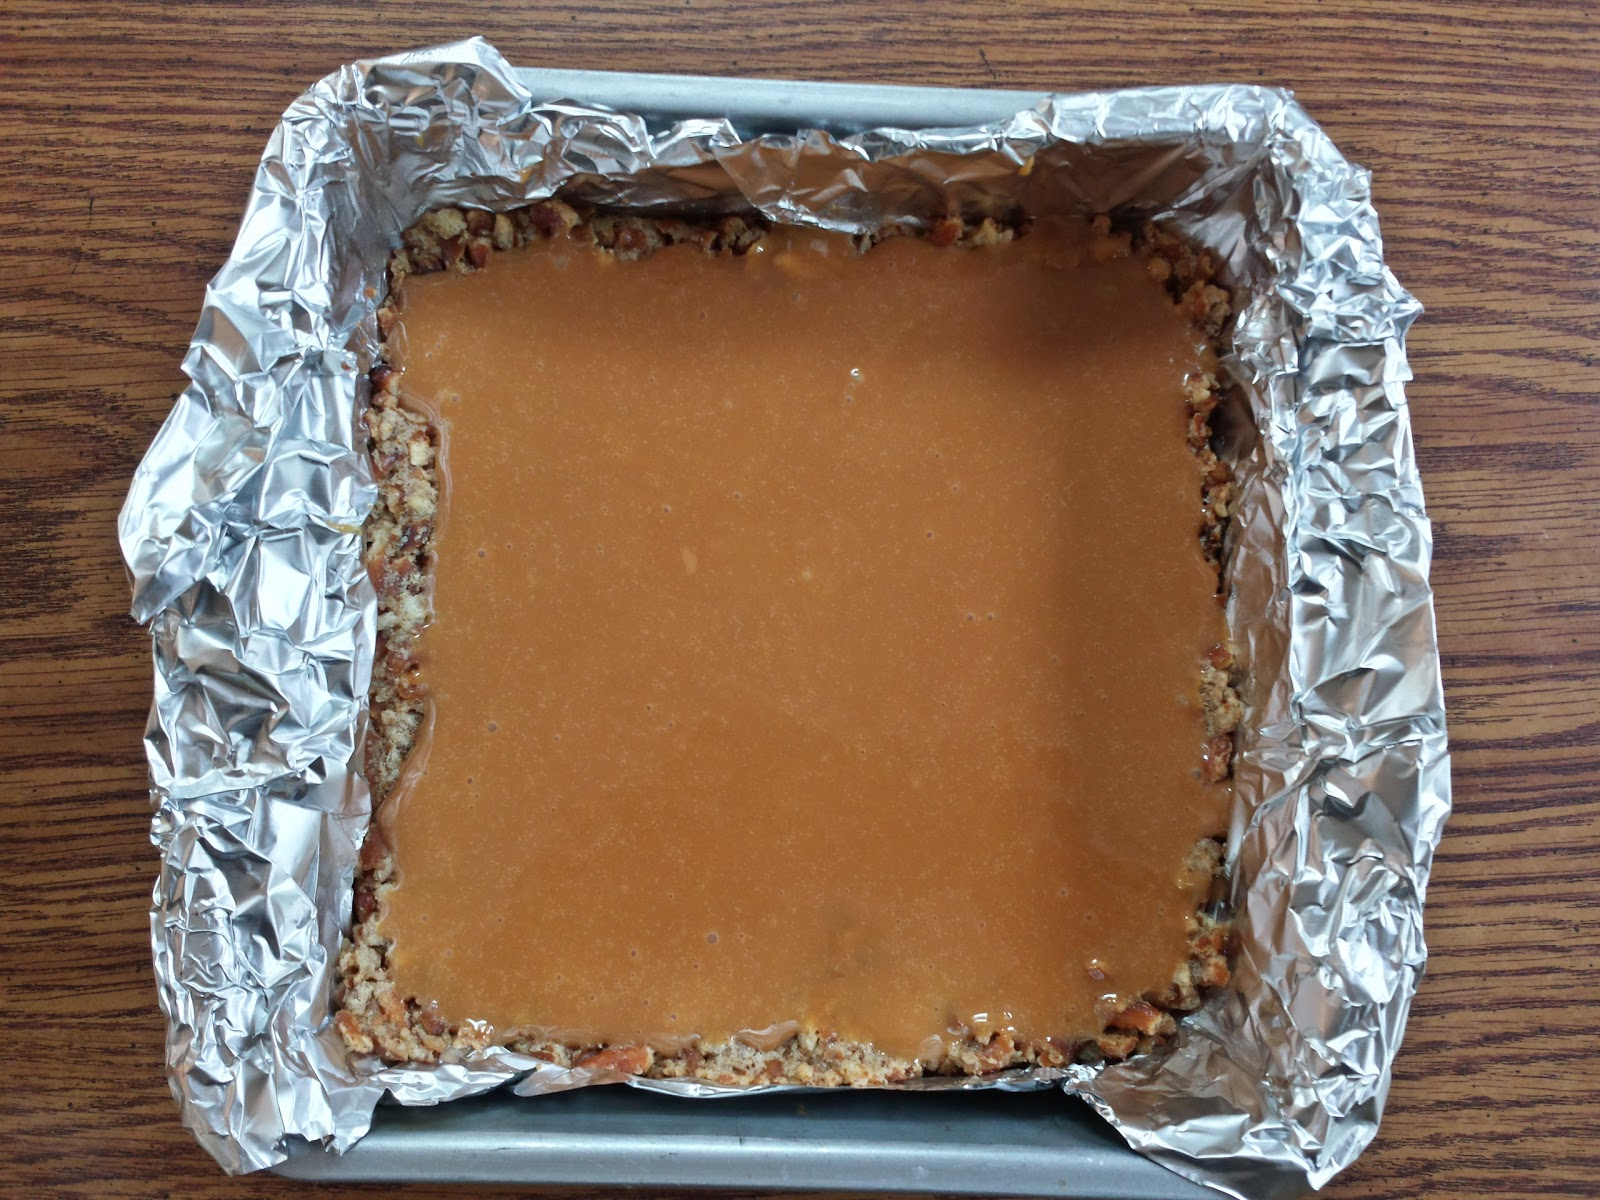 caramel over crust